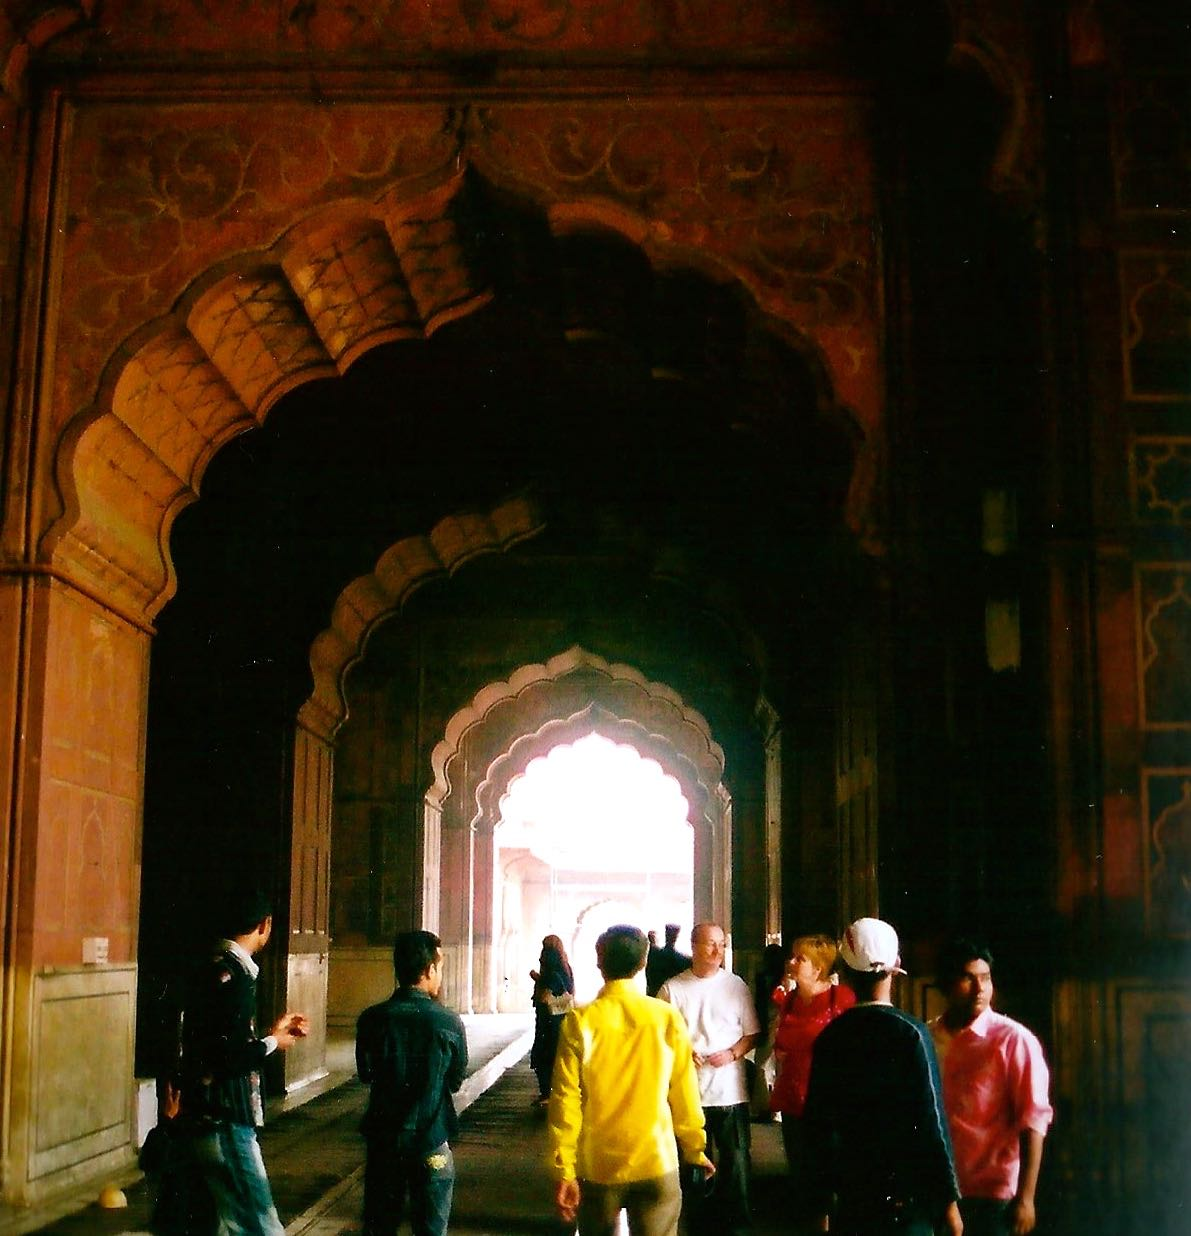 THE LAHORE GATE, ENTRANCE TO THE RED FORT IN DEHLI